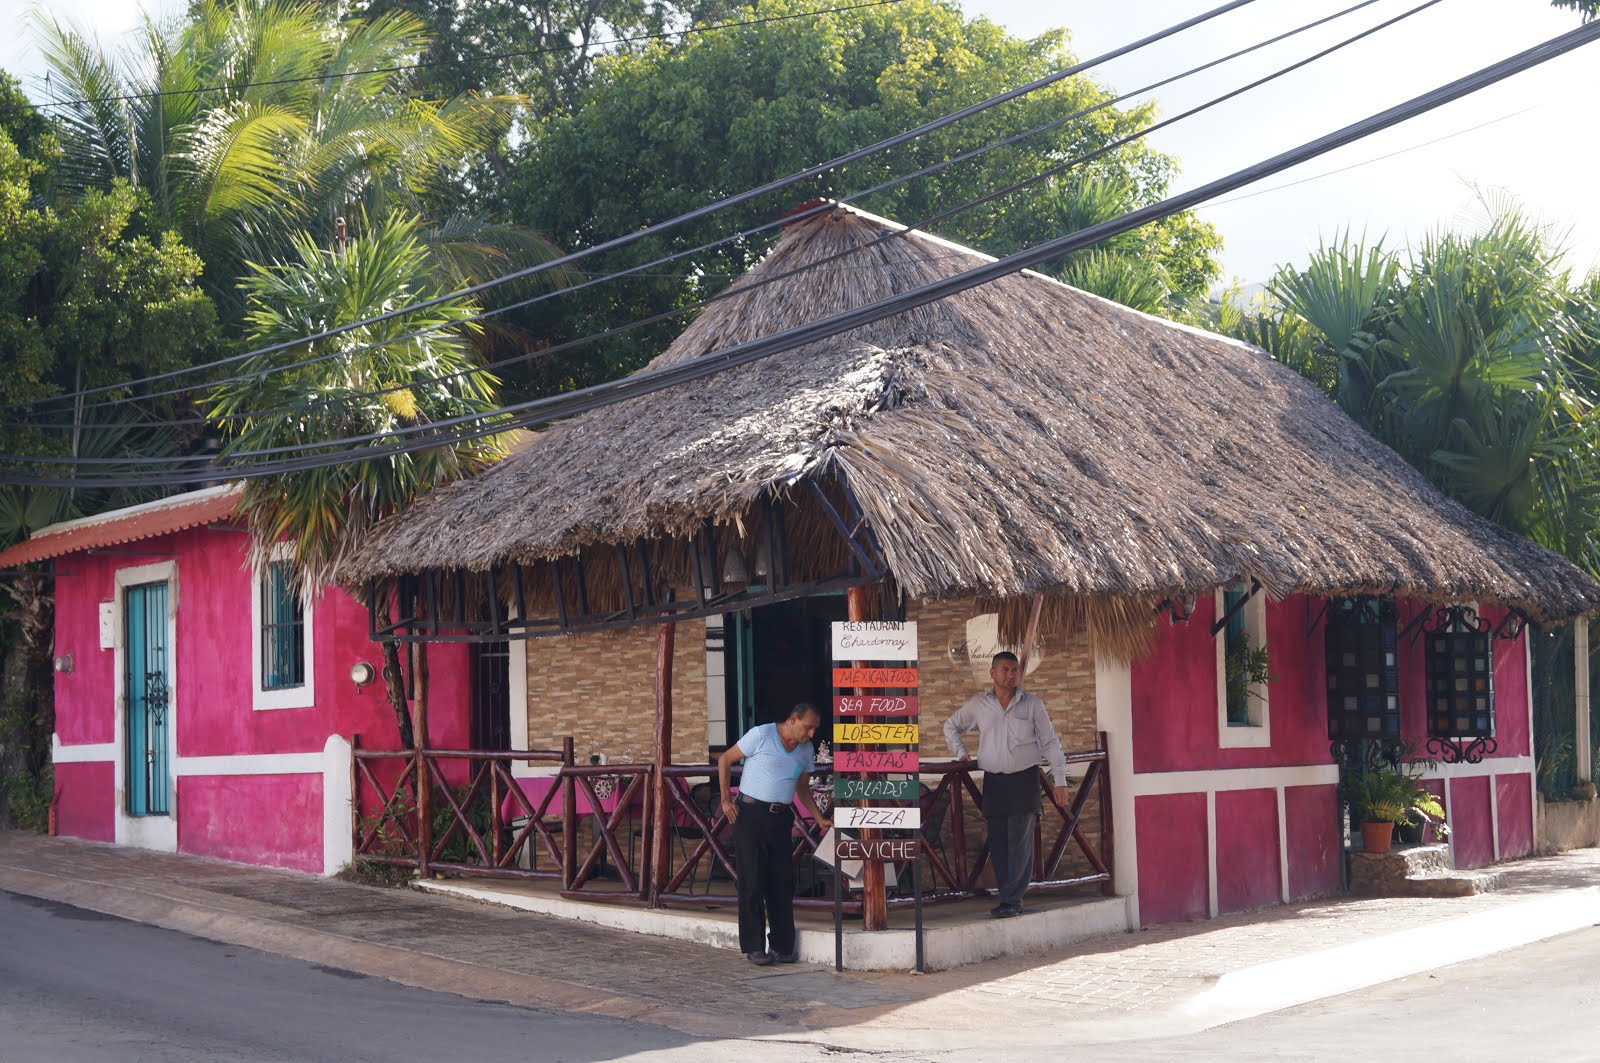 Restaurant in Cozumel